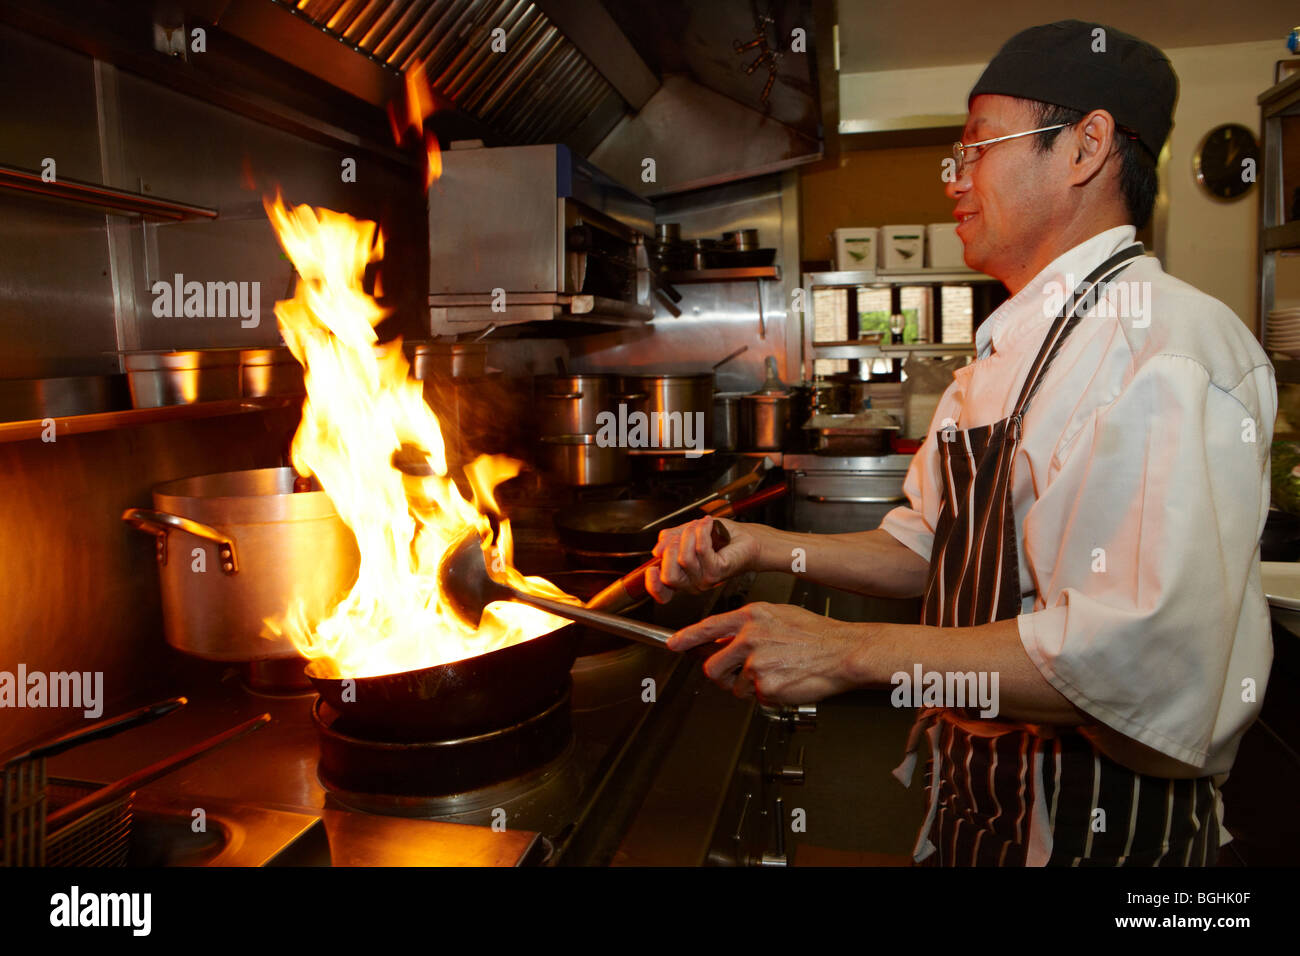 asian chef cooking in restaurant kitchen stock photo 27432959 alamy. Black Bedroom Furniture Sets. Home Design Ideas